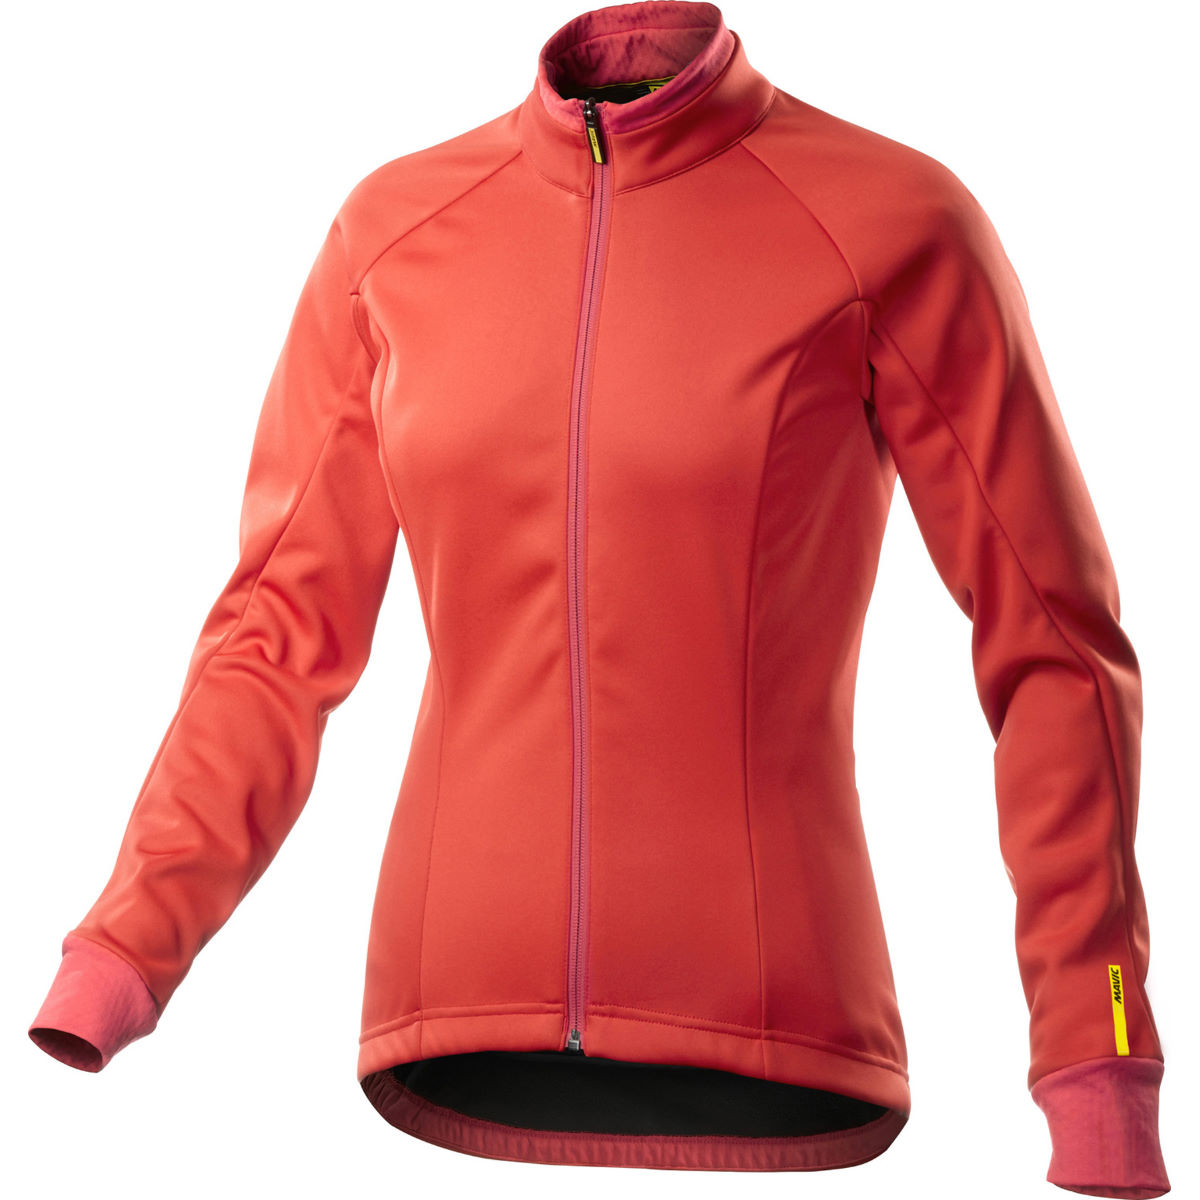 Veste Femme Mavic Aksium Thermo - XL Racing Red Vestes